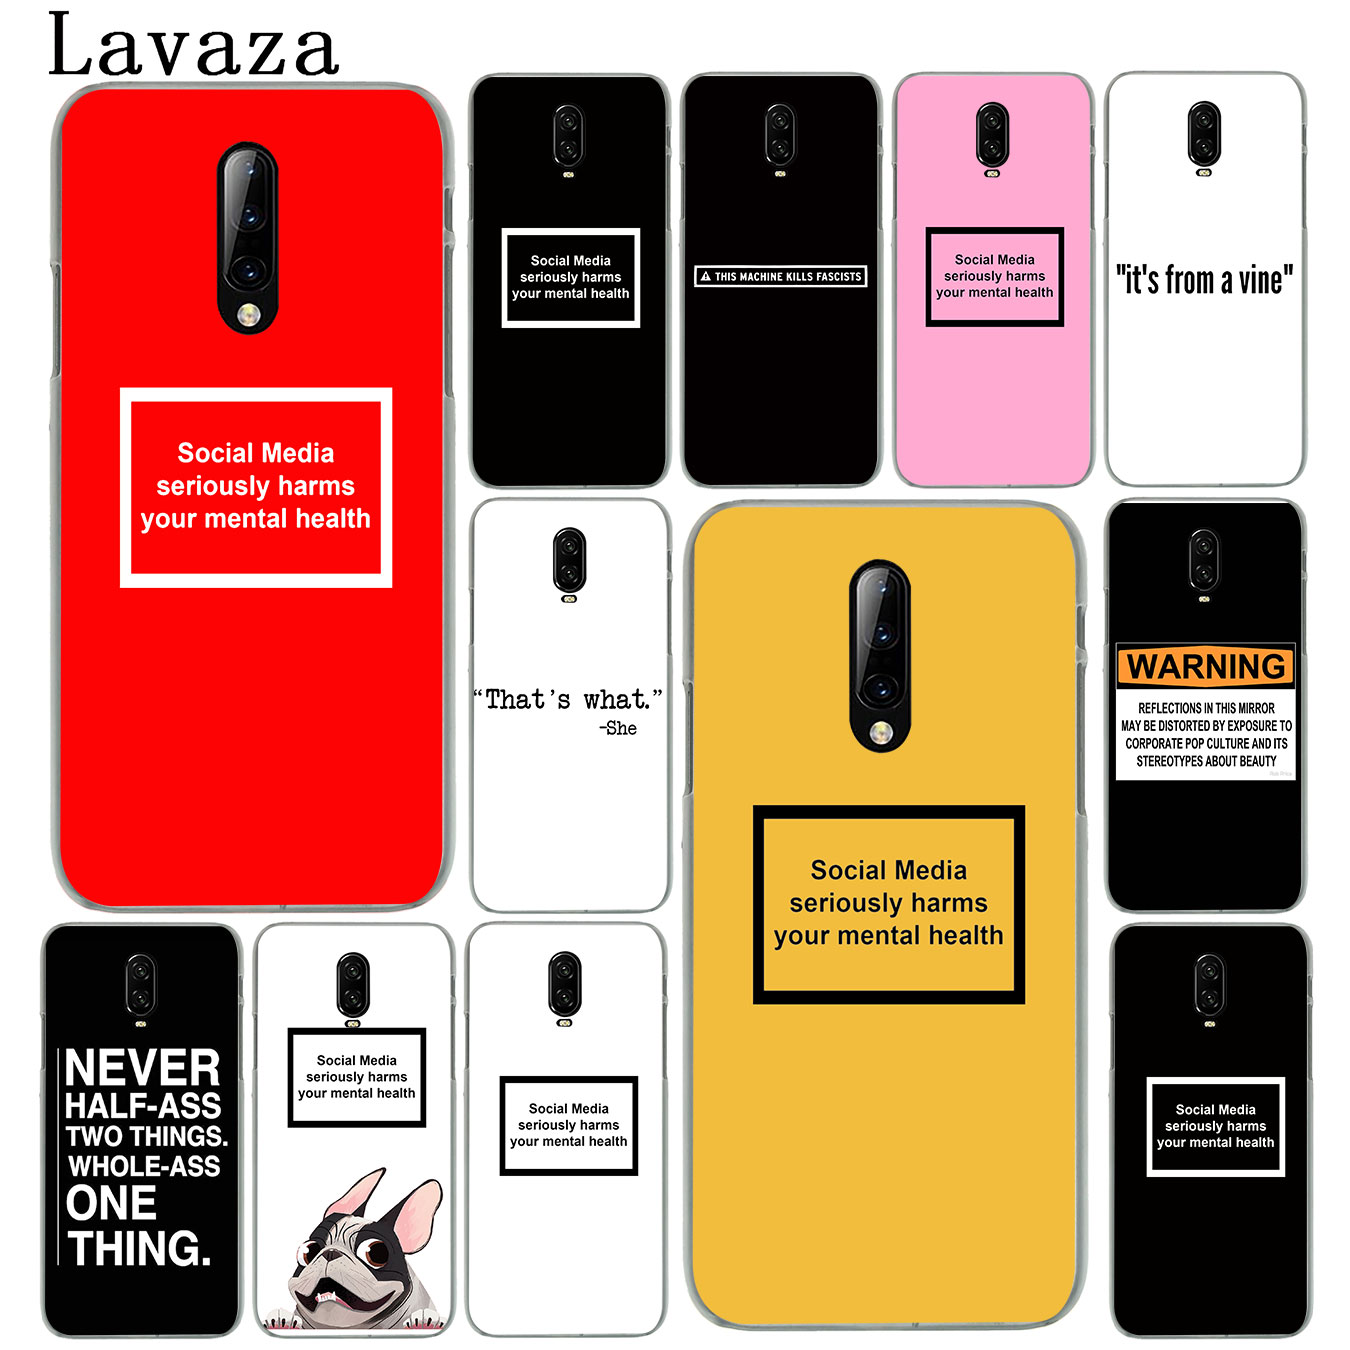 social media harms mental health Hard Plastic Cell Phone Case for Oneplus 7T 7 Pro 6 6t 5 5T Cover One Plus 7Pro image